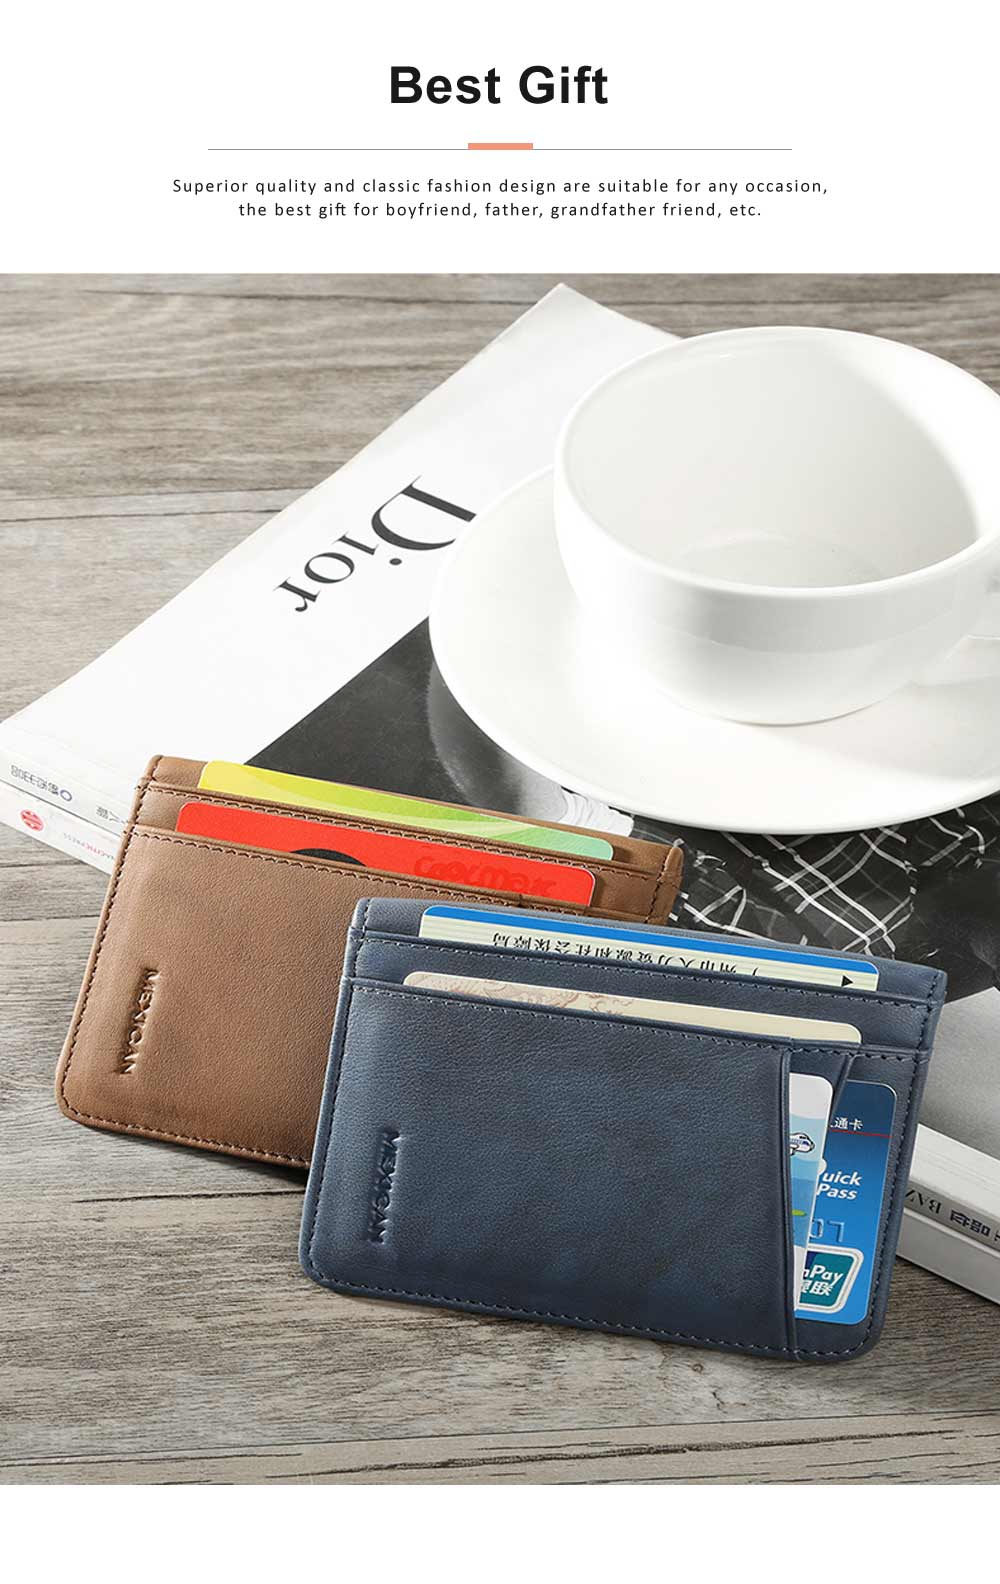 Men's Wallet Genuine Cowhide Leather Extra Capacity Bifold Wallets Slim Top Flip Money Clip Gifts for Men 4